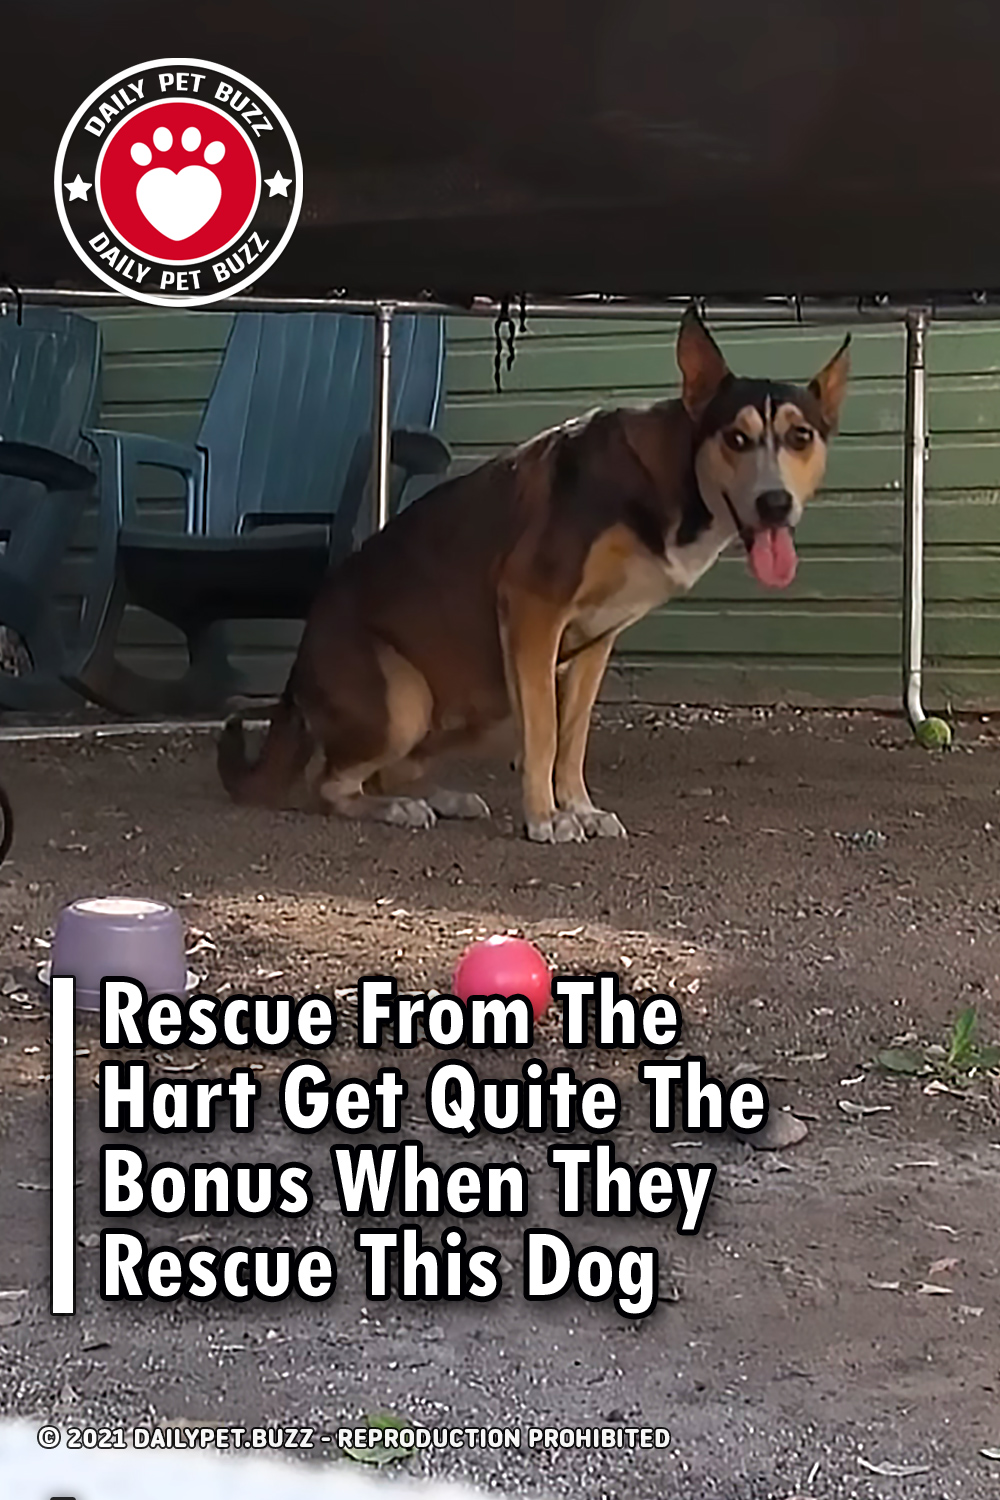 Rescue From The Hart Get Quite The Bonus When They Rescue This Dog